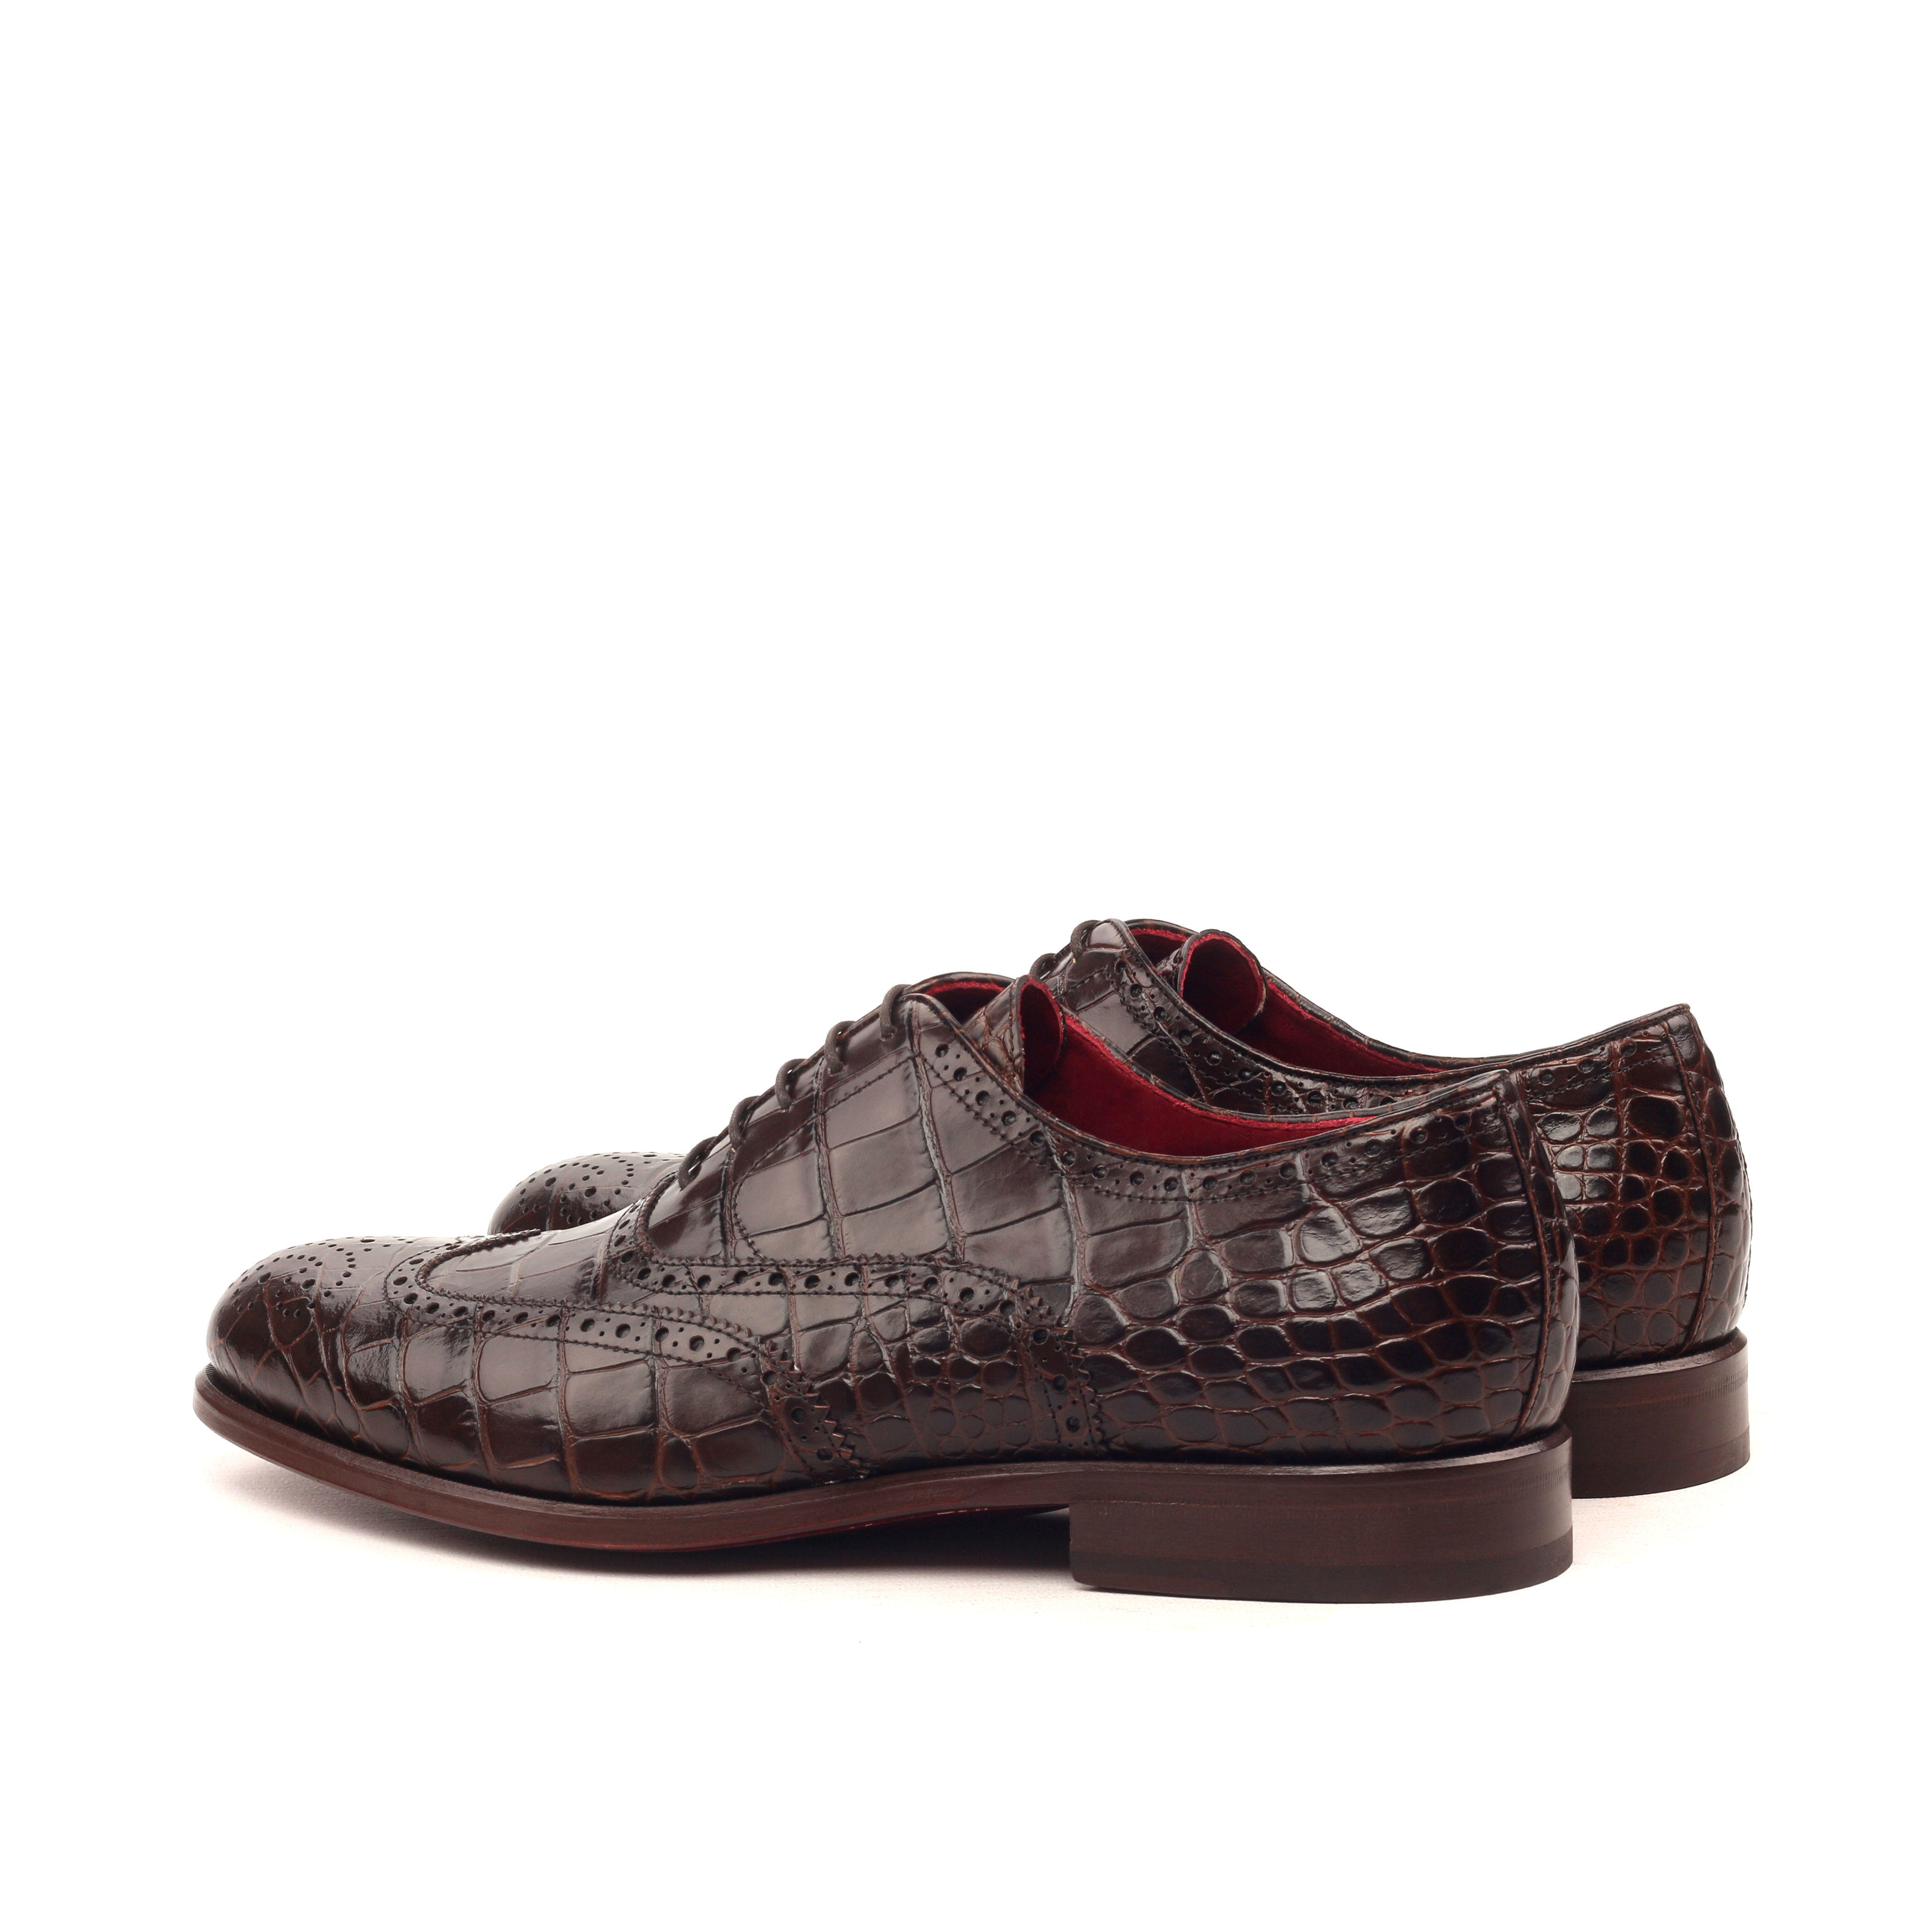 MANOR OF LONDON 'The Marylebone' Brown Croco Brogue Luxury Custom Initials Monogrammed Back Side View